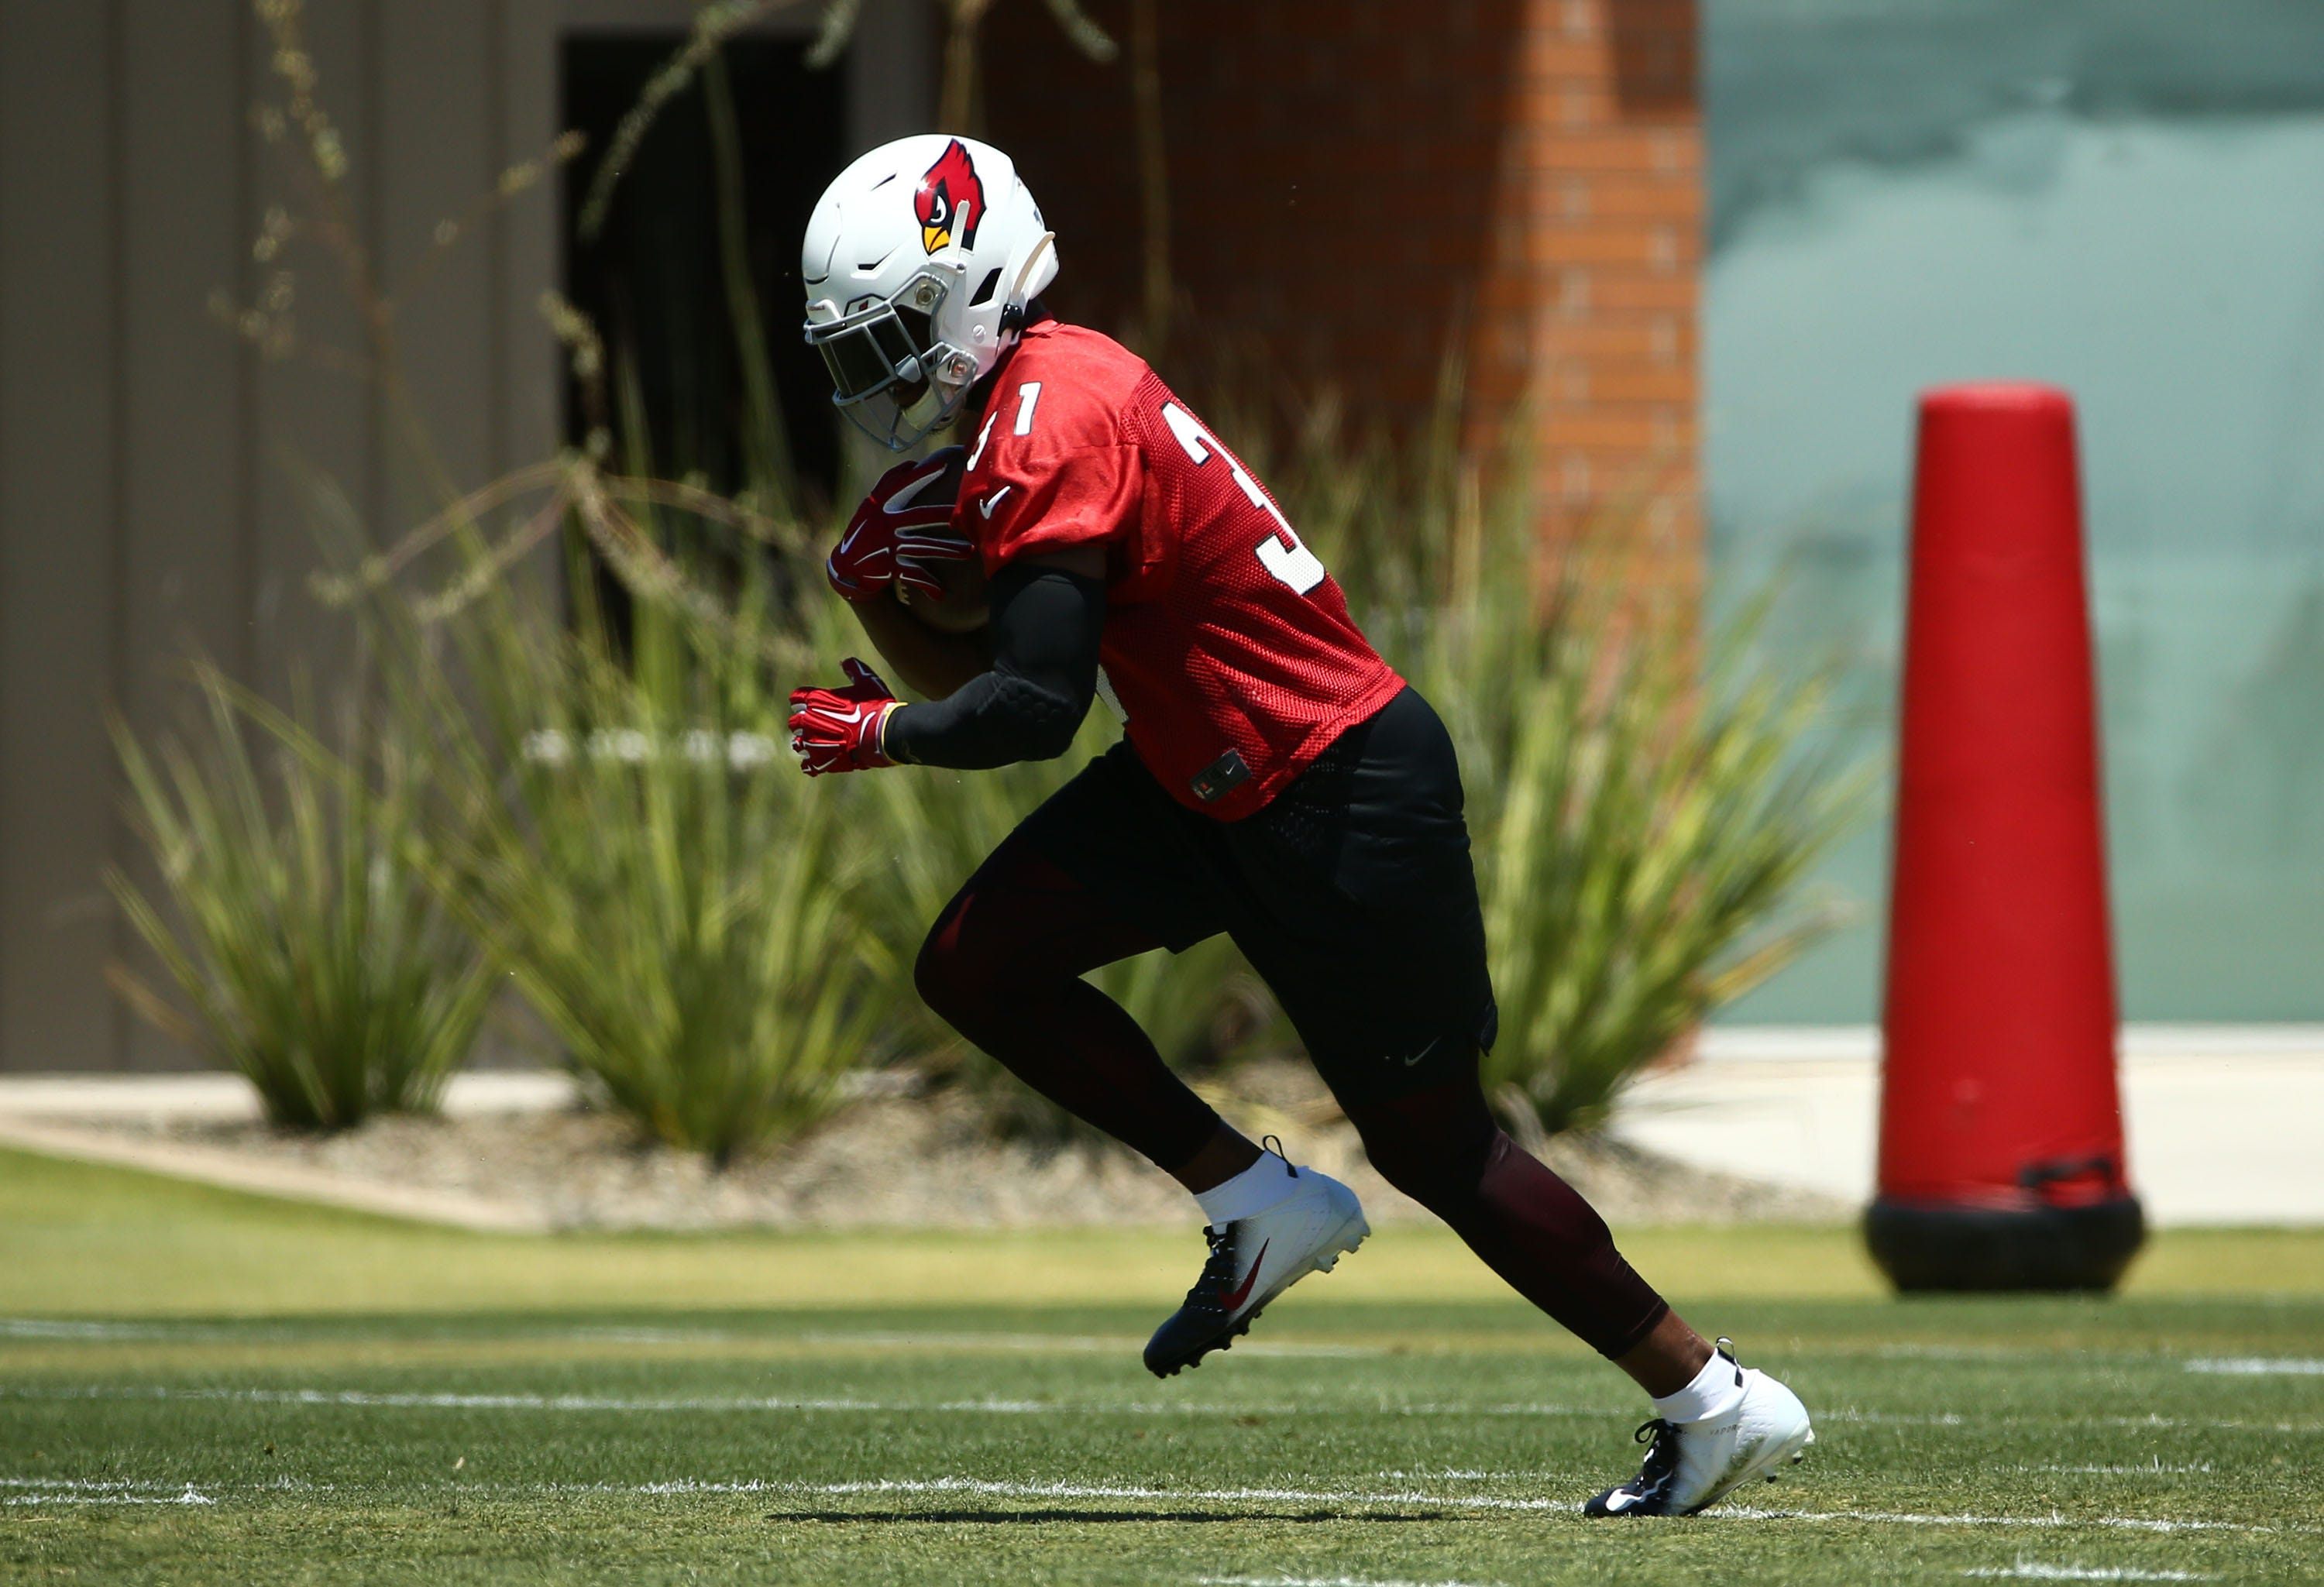 Is David Johnson the NFL's best running back? The Arizona Cardinals RB thinks he is